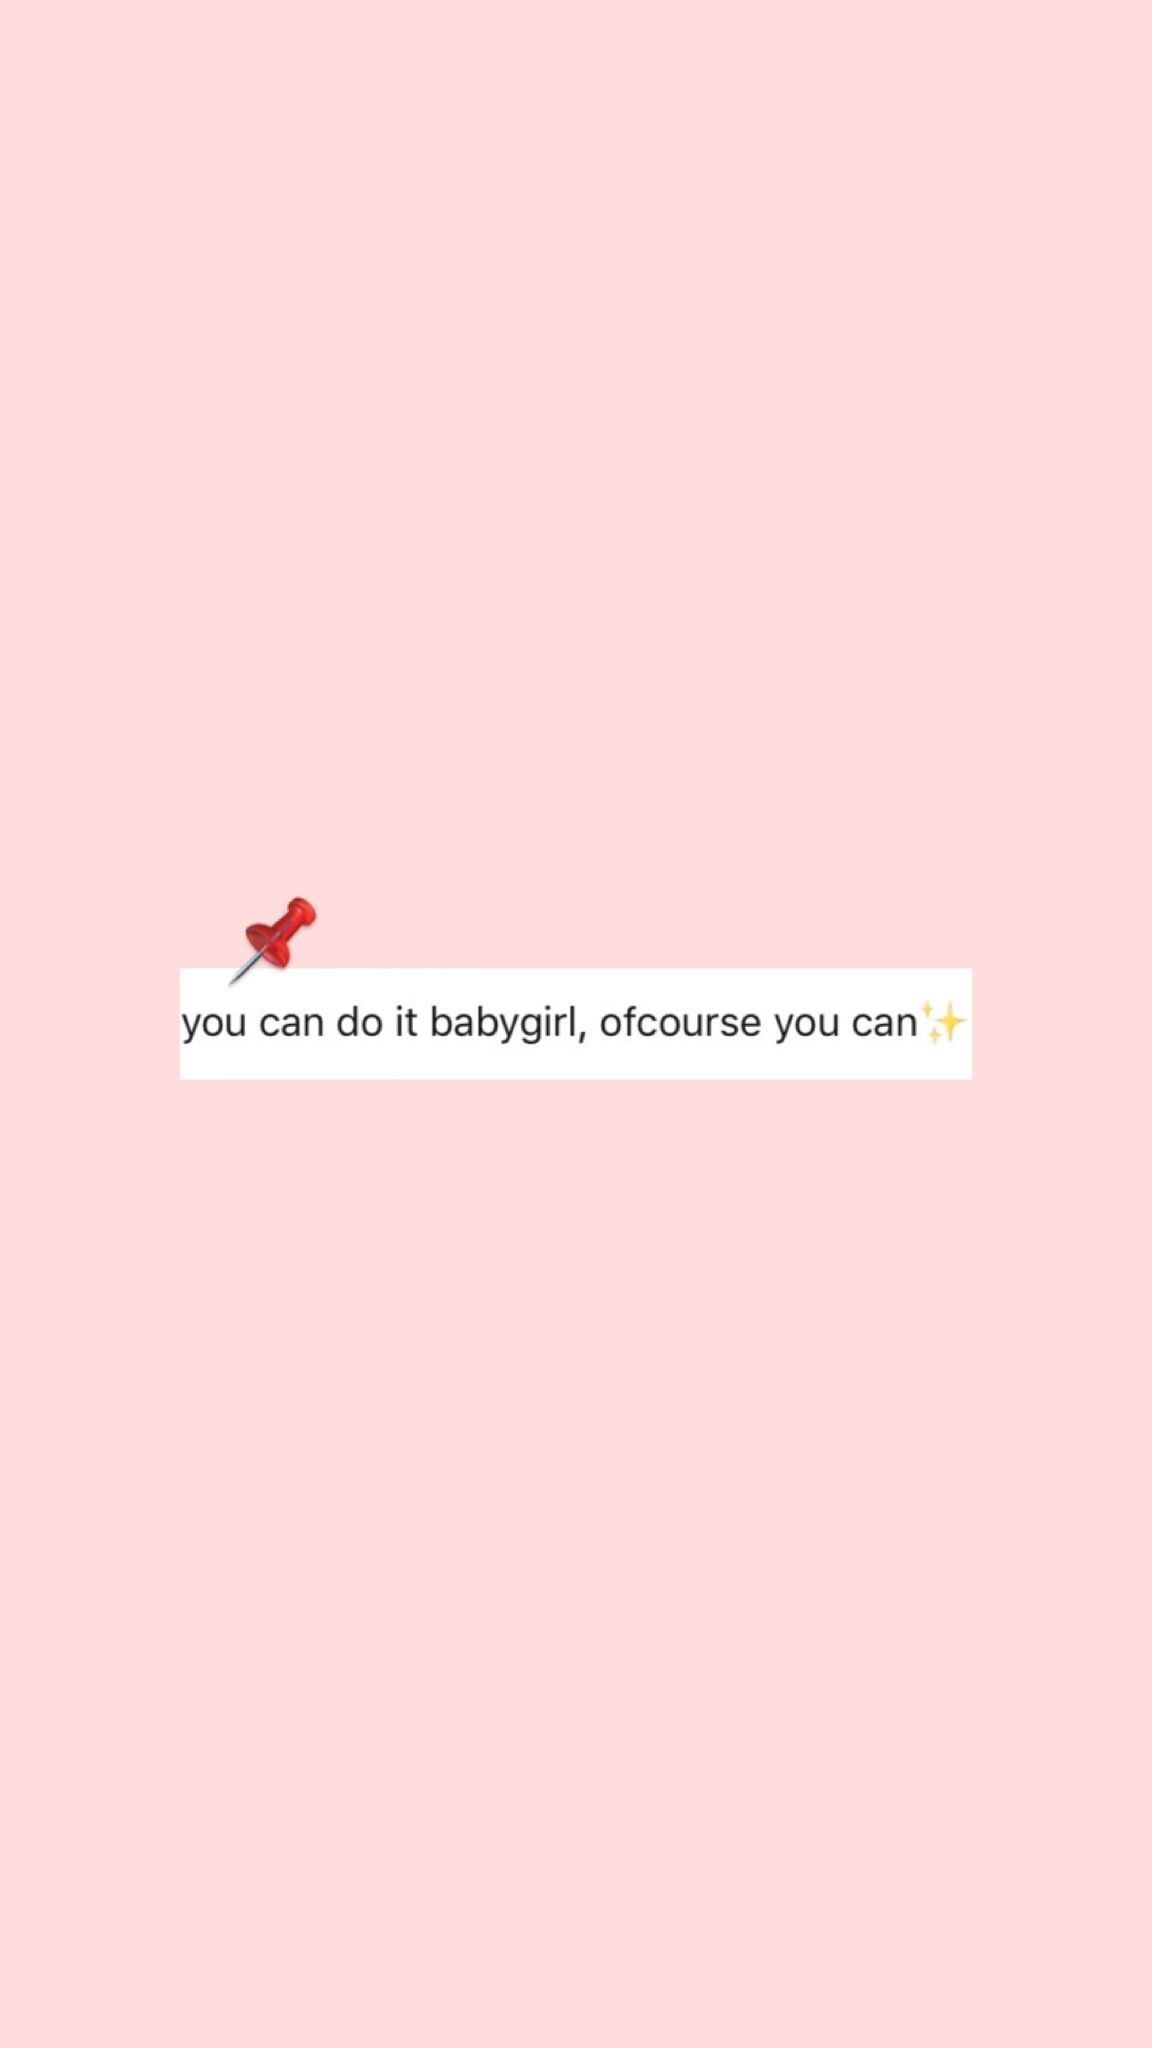 1152x2048 You Can Do It Babygirl Of Course You Can Quoting Pinterest Wallpaper Quotes Inspirational Quotes Reminder Quotes